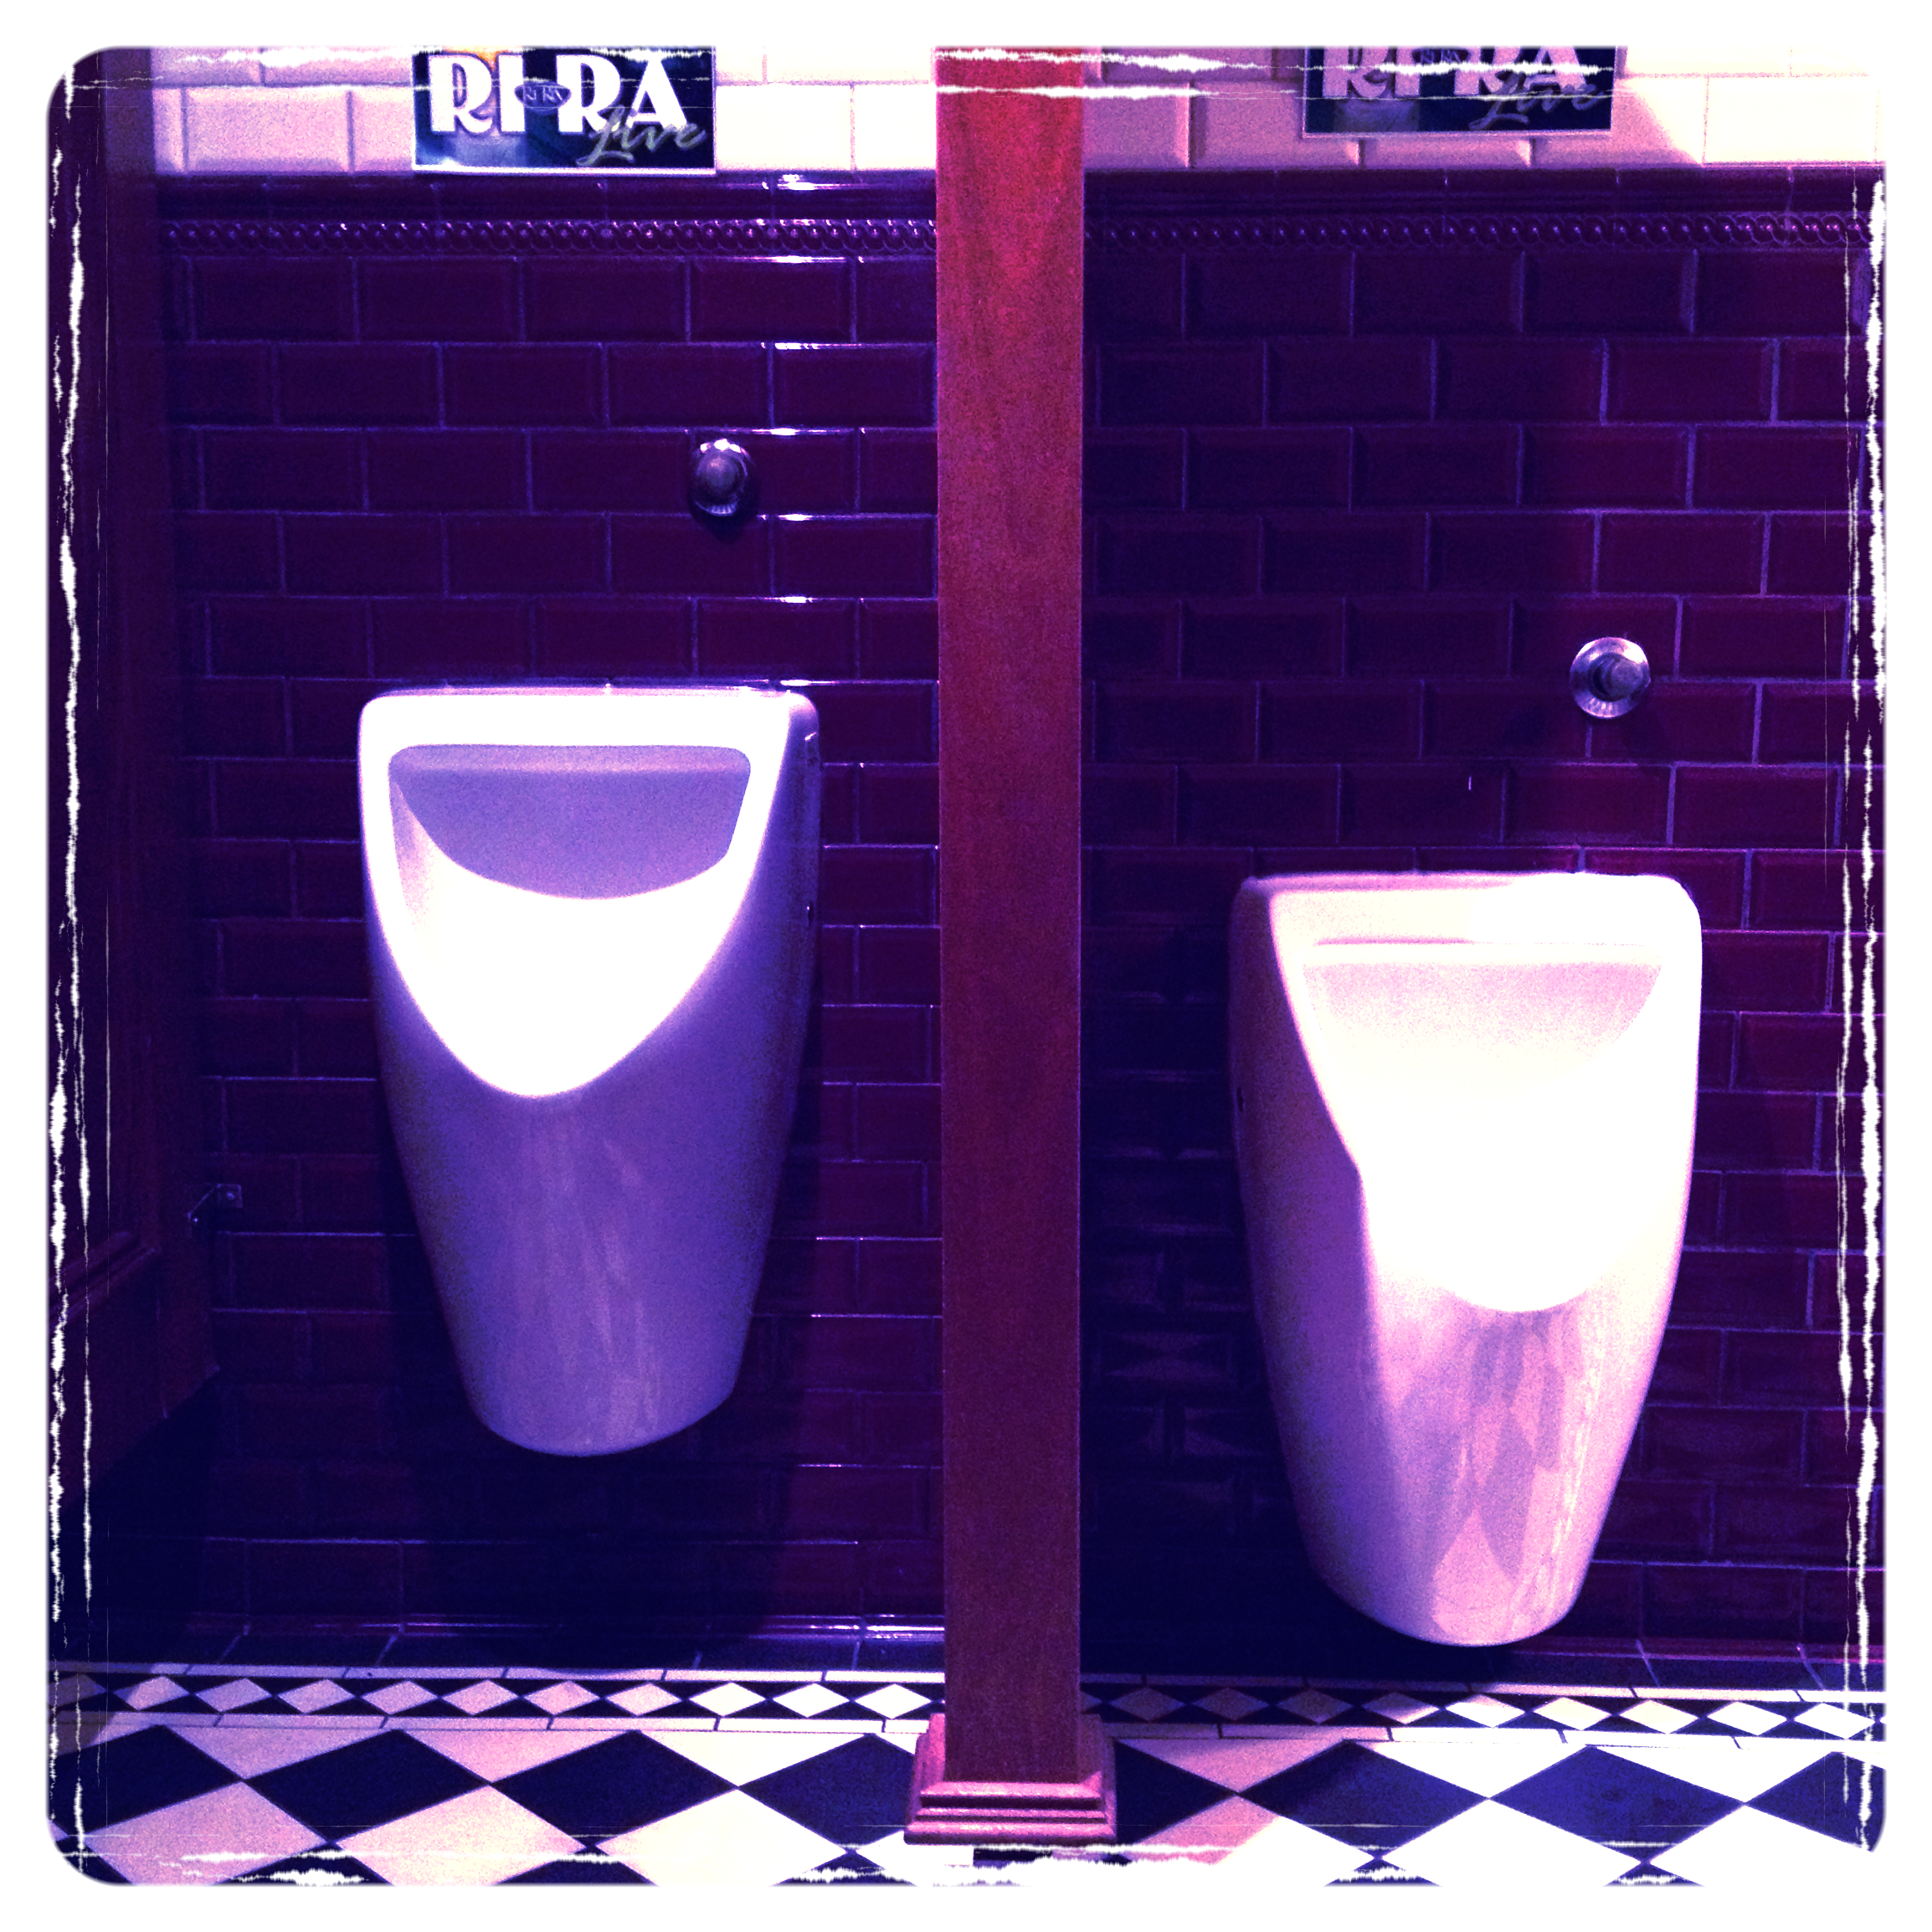 From my urinal project.